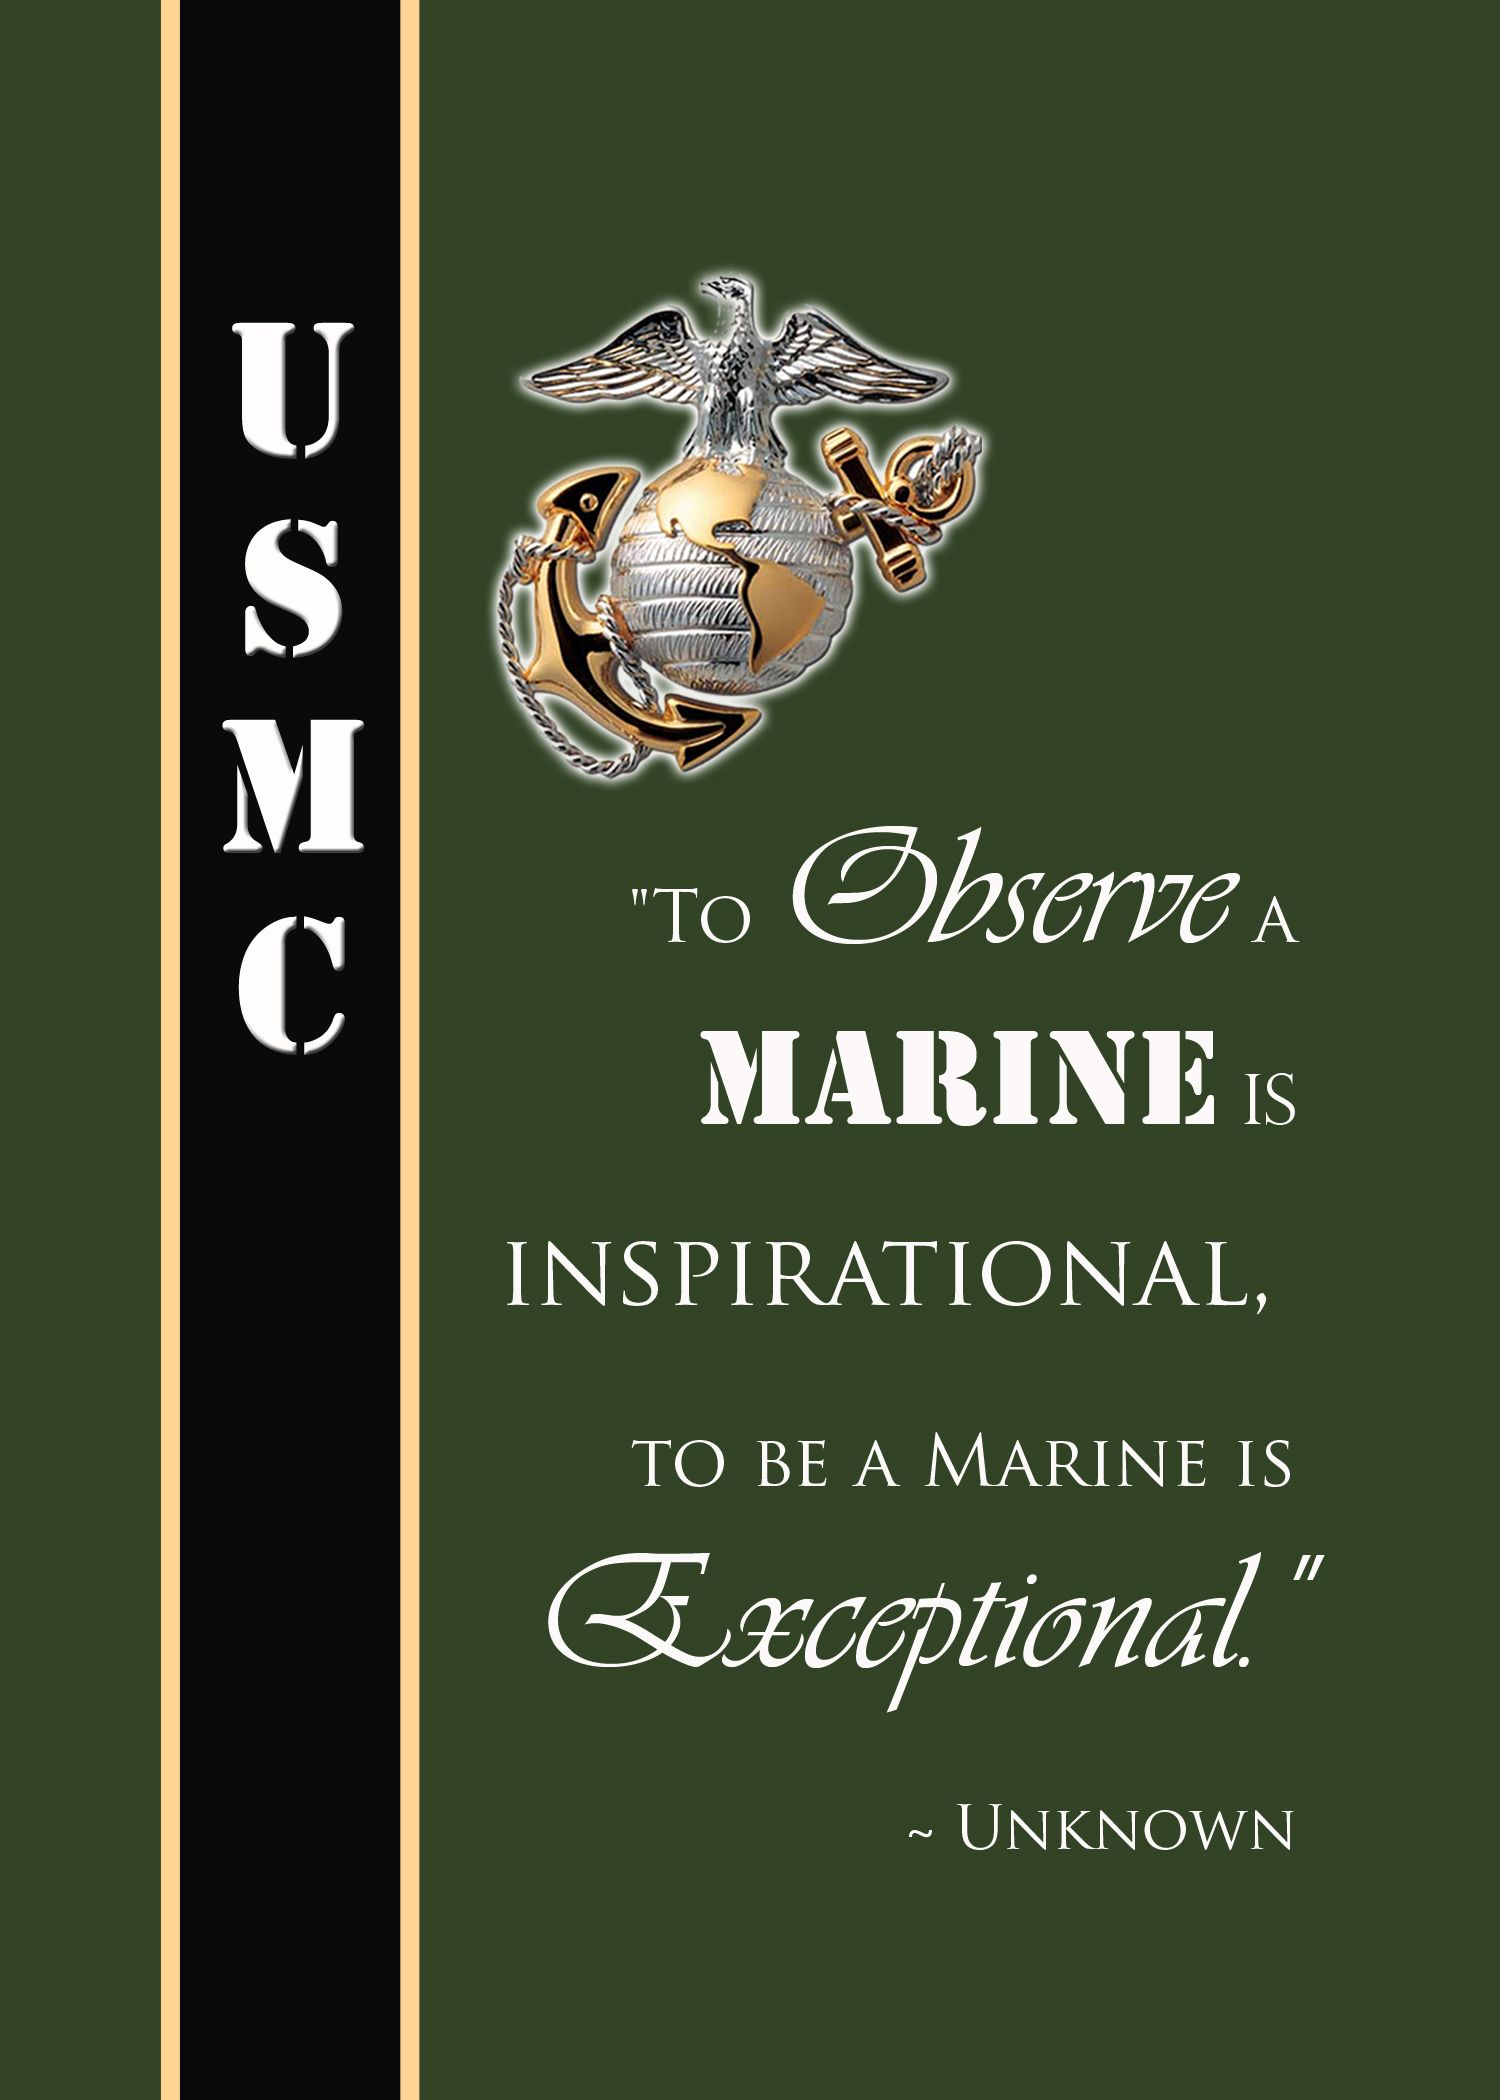 Marines Quotes Fascinating Famous Marine Quoteto Observe A Marine Is Inspirational To Be A . 2017